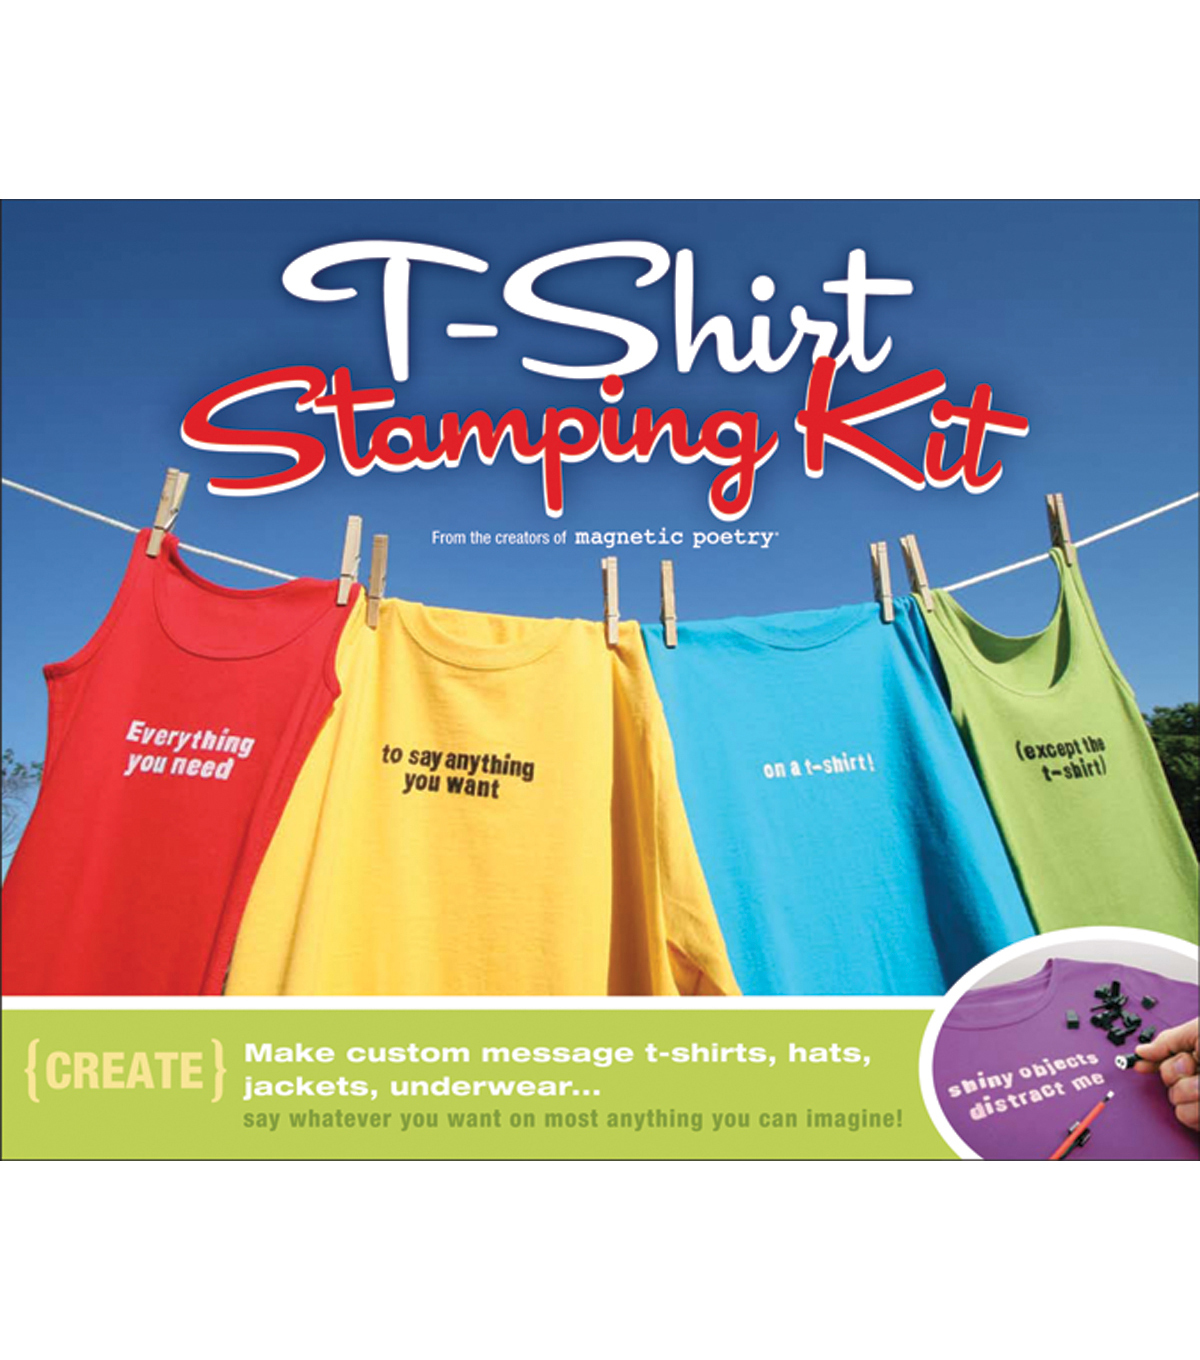 Magnetic Poetry T-Shirt Stamping Kit